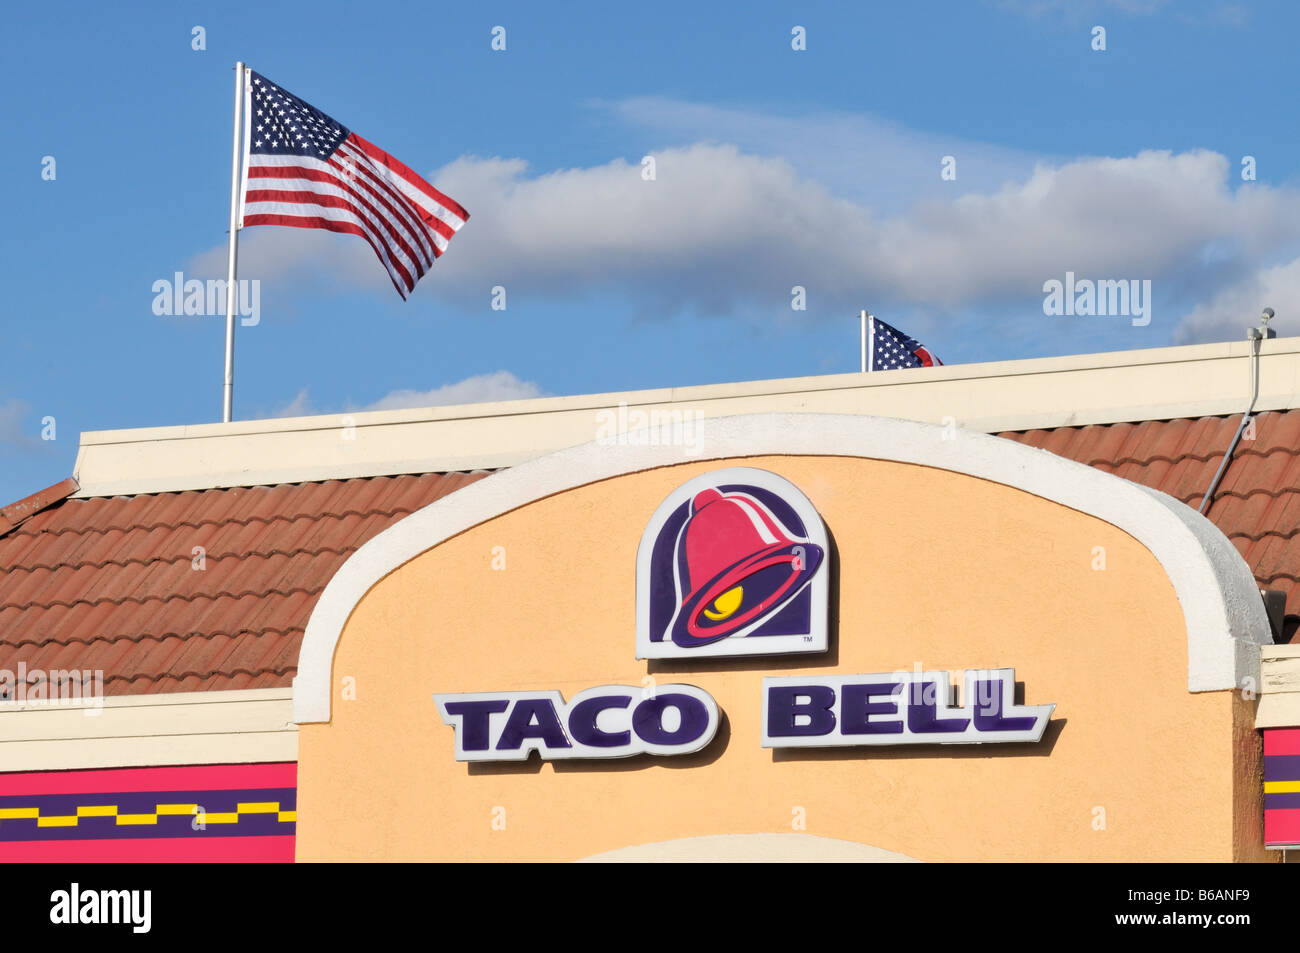 Taco Bell Logo taco bell logo and sign on the exterior of restaurant with